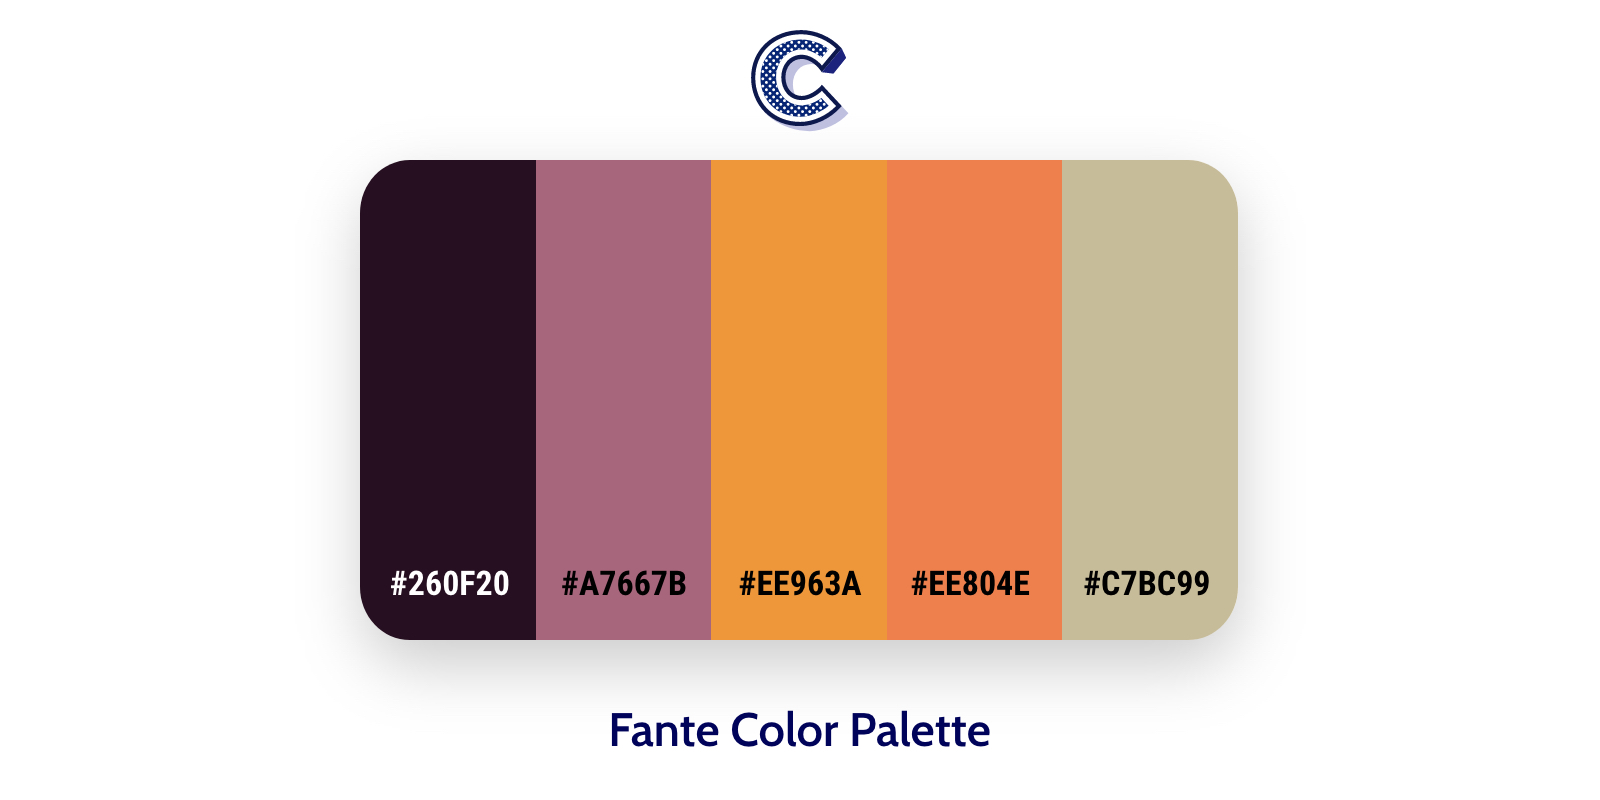 the featured image of fante color palette